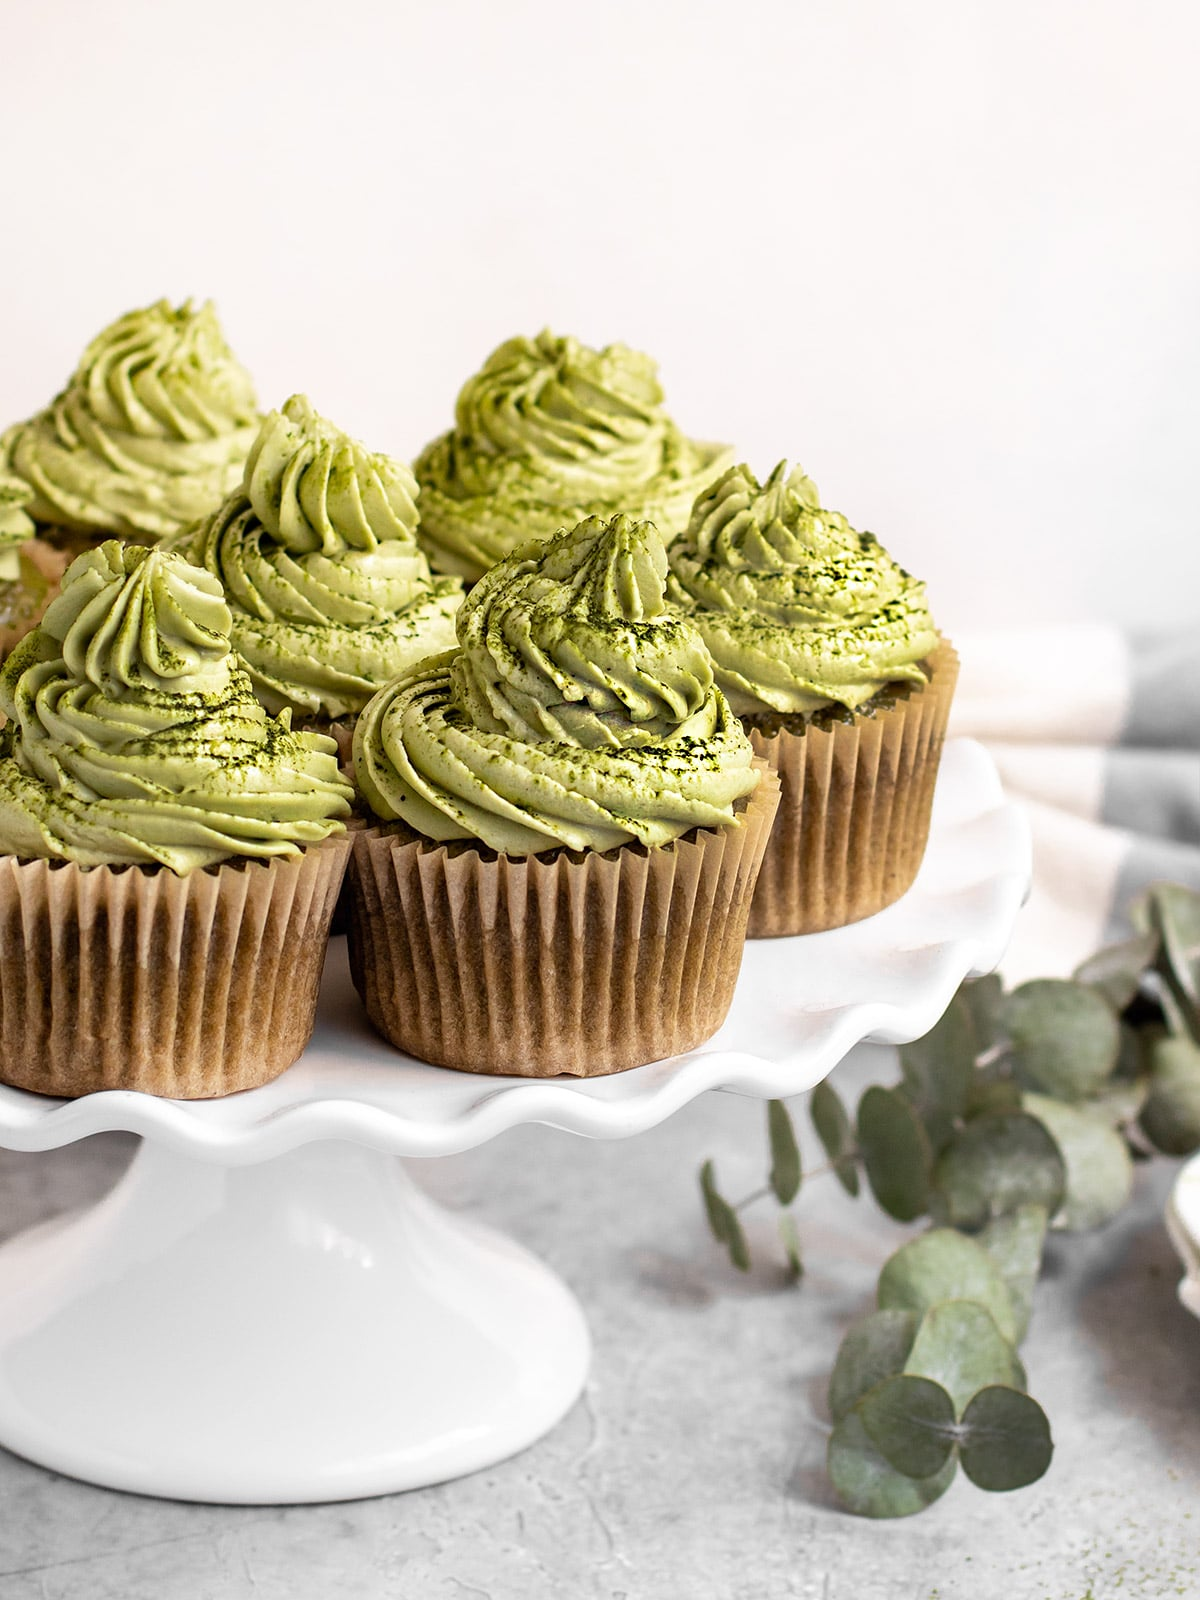 cake stand filled with matcha cupcakes with green matcha frosting on top